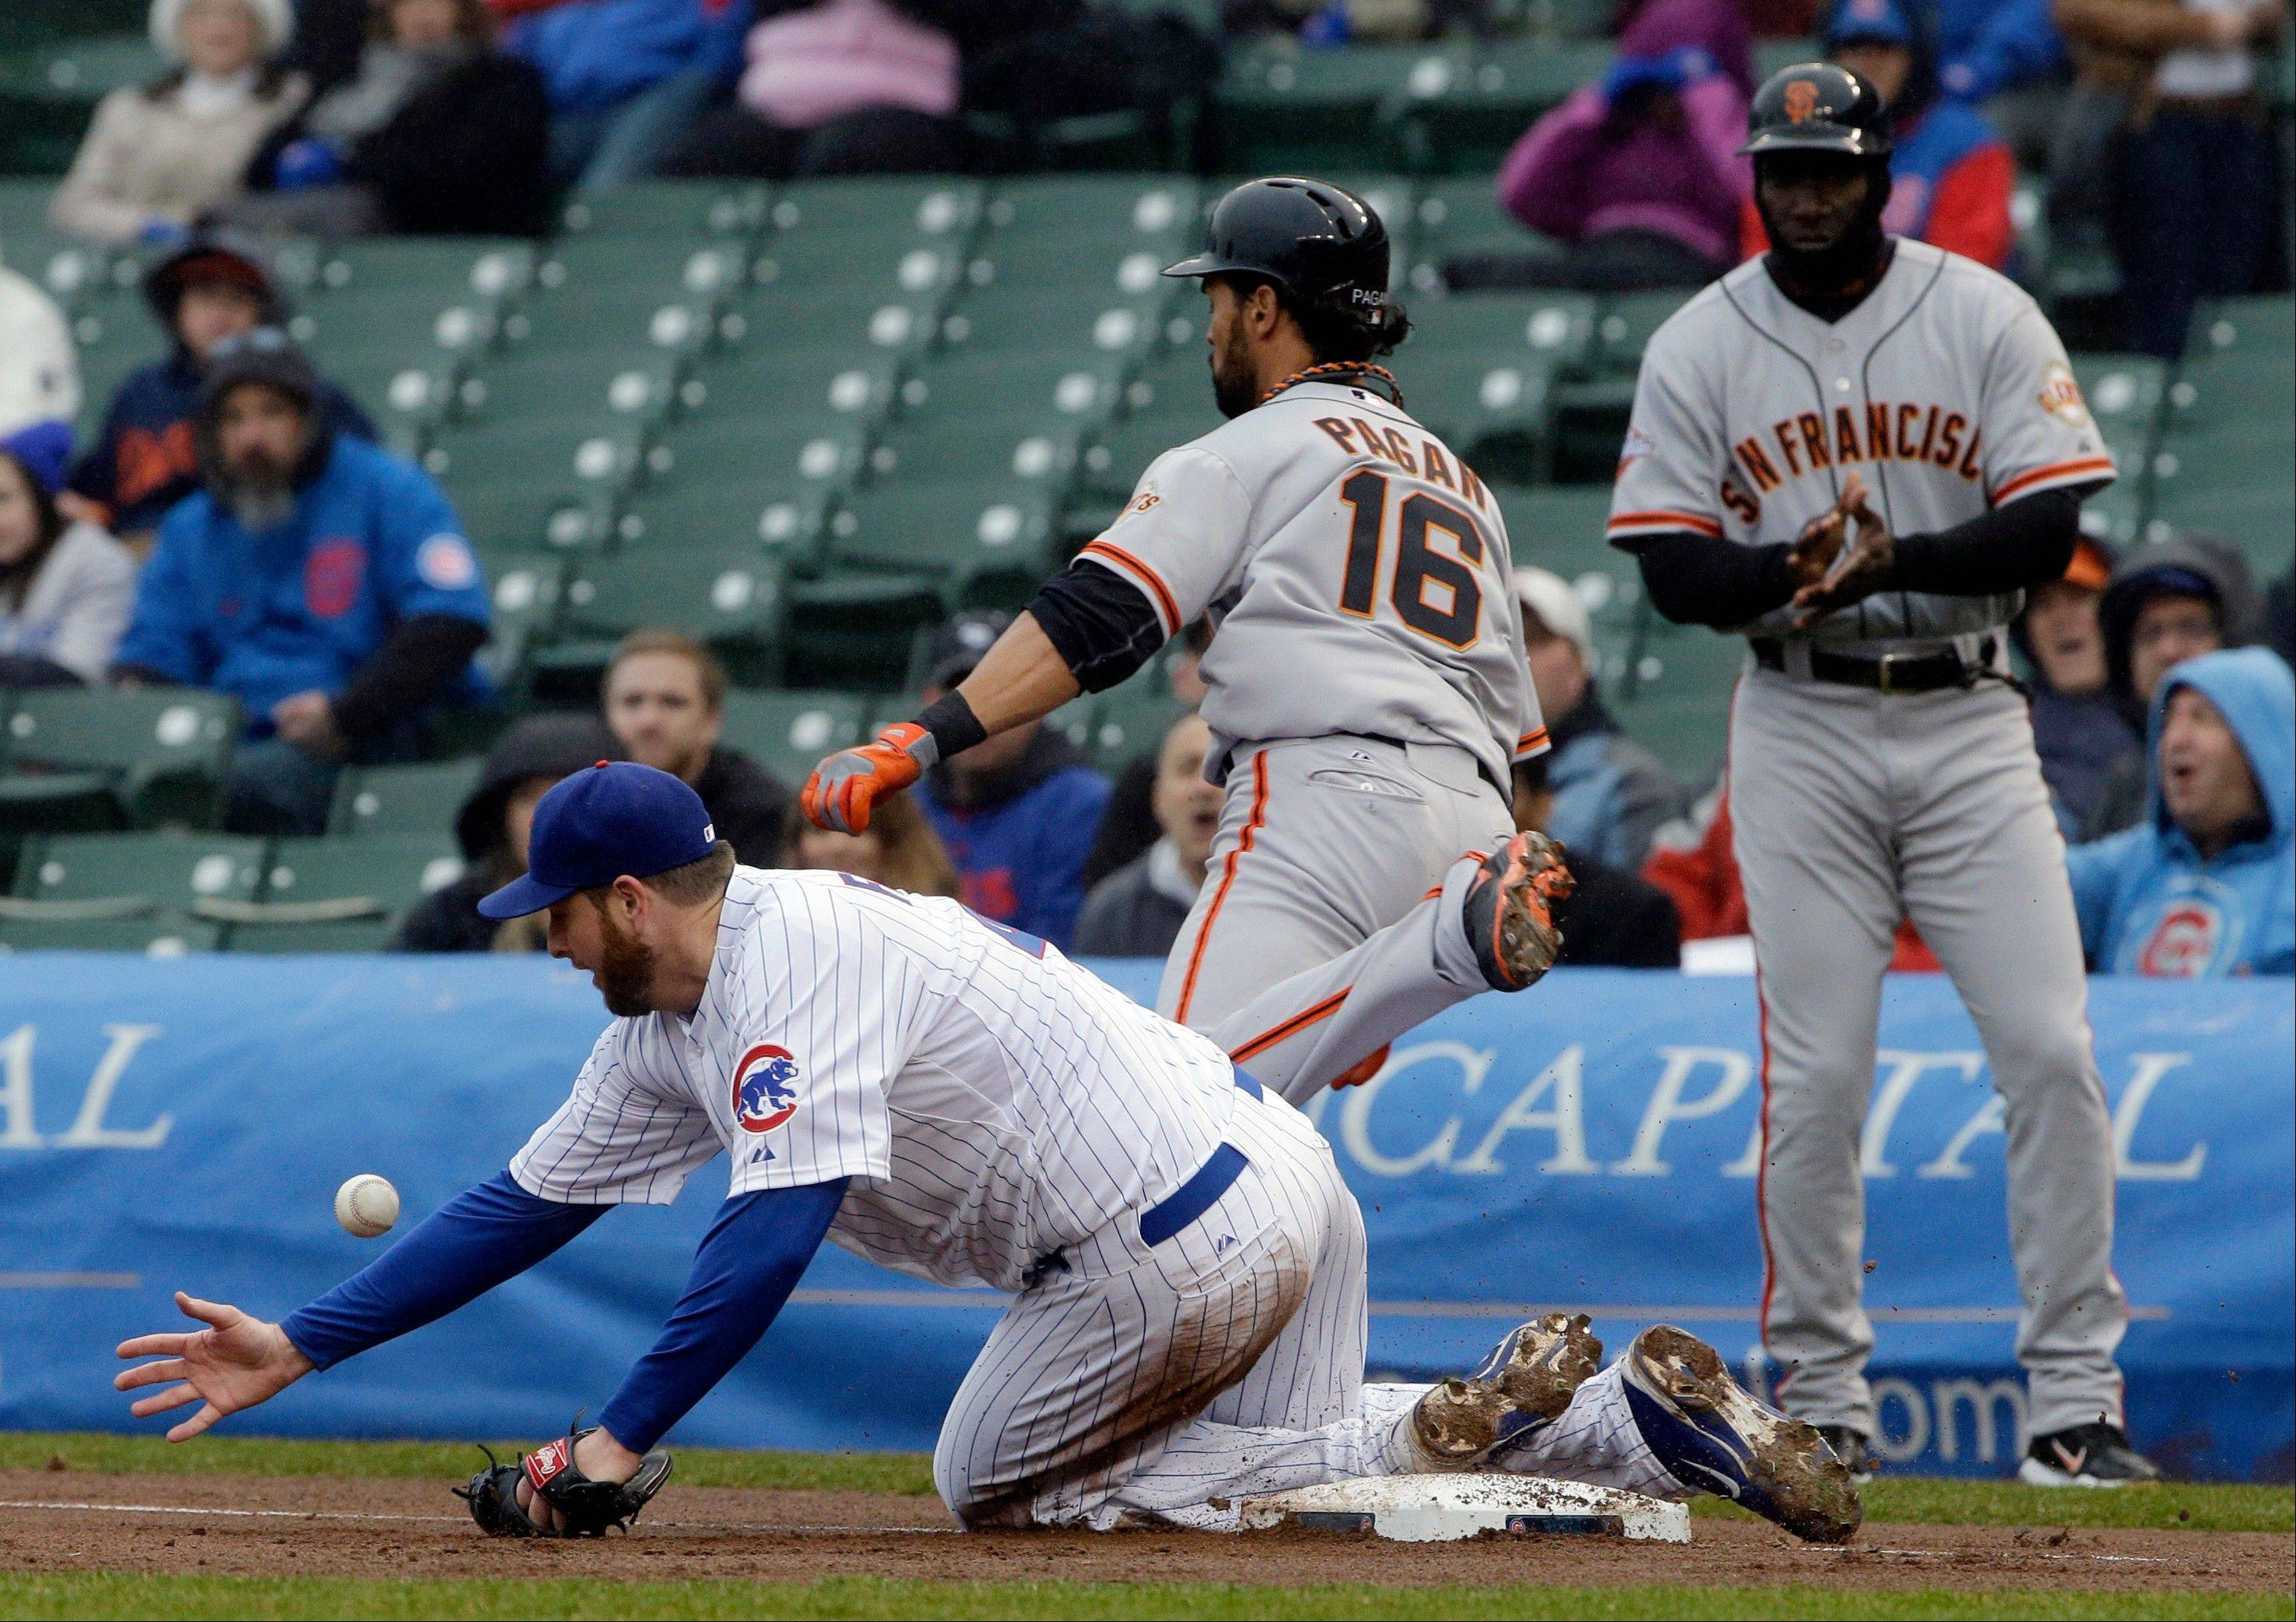 Chicago Cubs starter Scott Feldman, bottom, can't make the catch from first baseman Anthony Rizzo as San Francisco Giants' Angel Pagan(16) is safe at first base during the first inning of a baseball game in Chicago, Thursday, April 11, 2013.